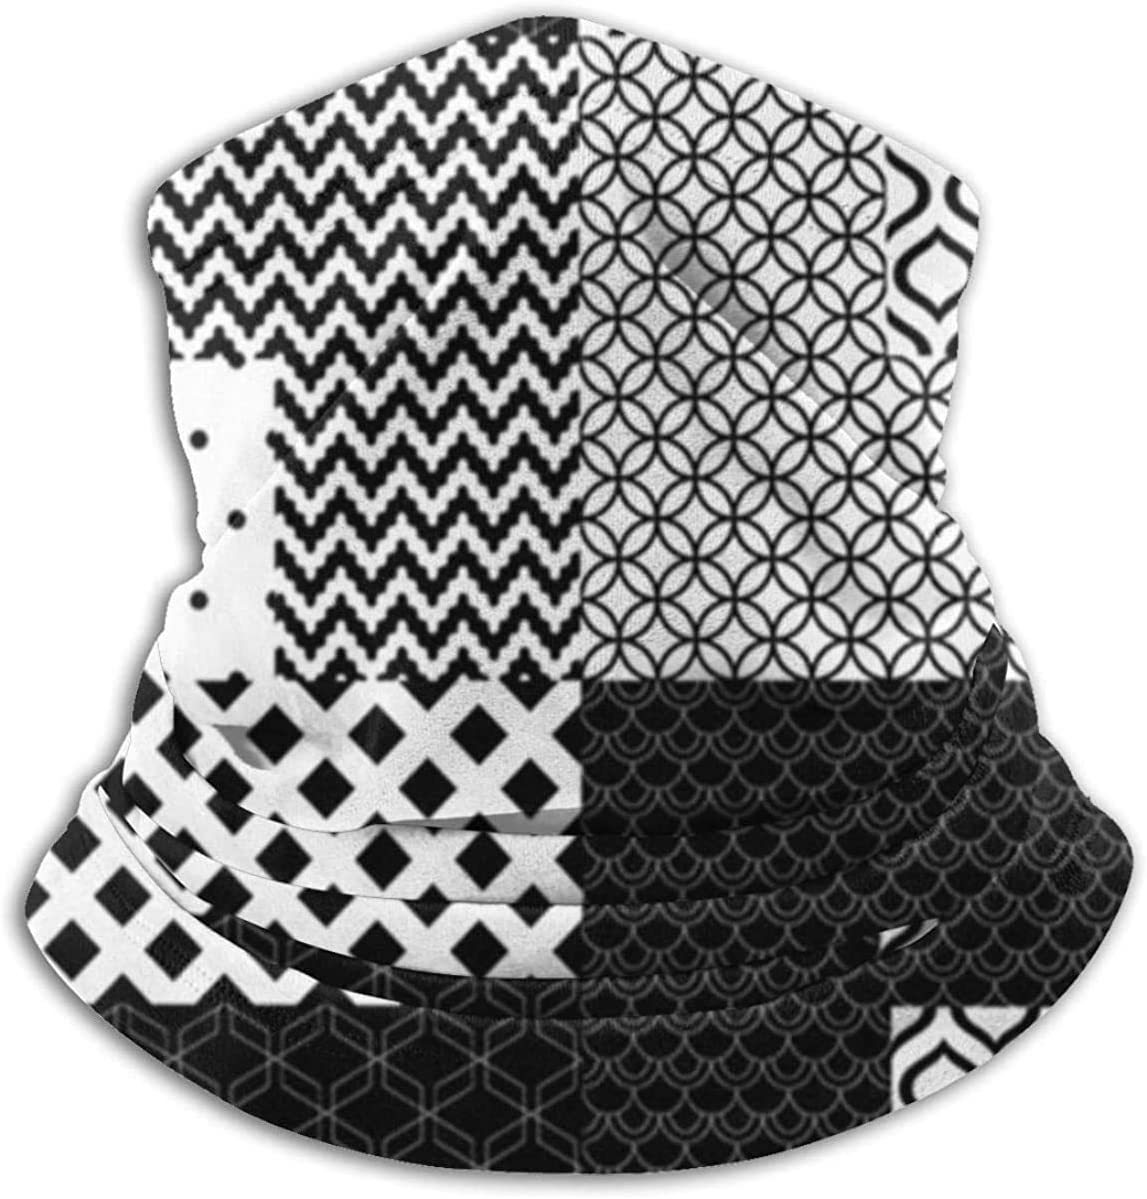 Lastbest Black White Patchwork Quilted Geometric Neck Warmer Multifunction Scarf Hat Neck Gaiter Neck Cap Bala Windproof Neck Heating Wrap Outdoor Sports